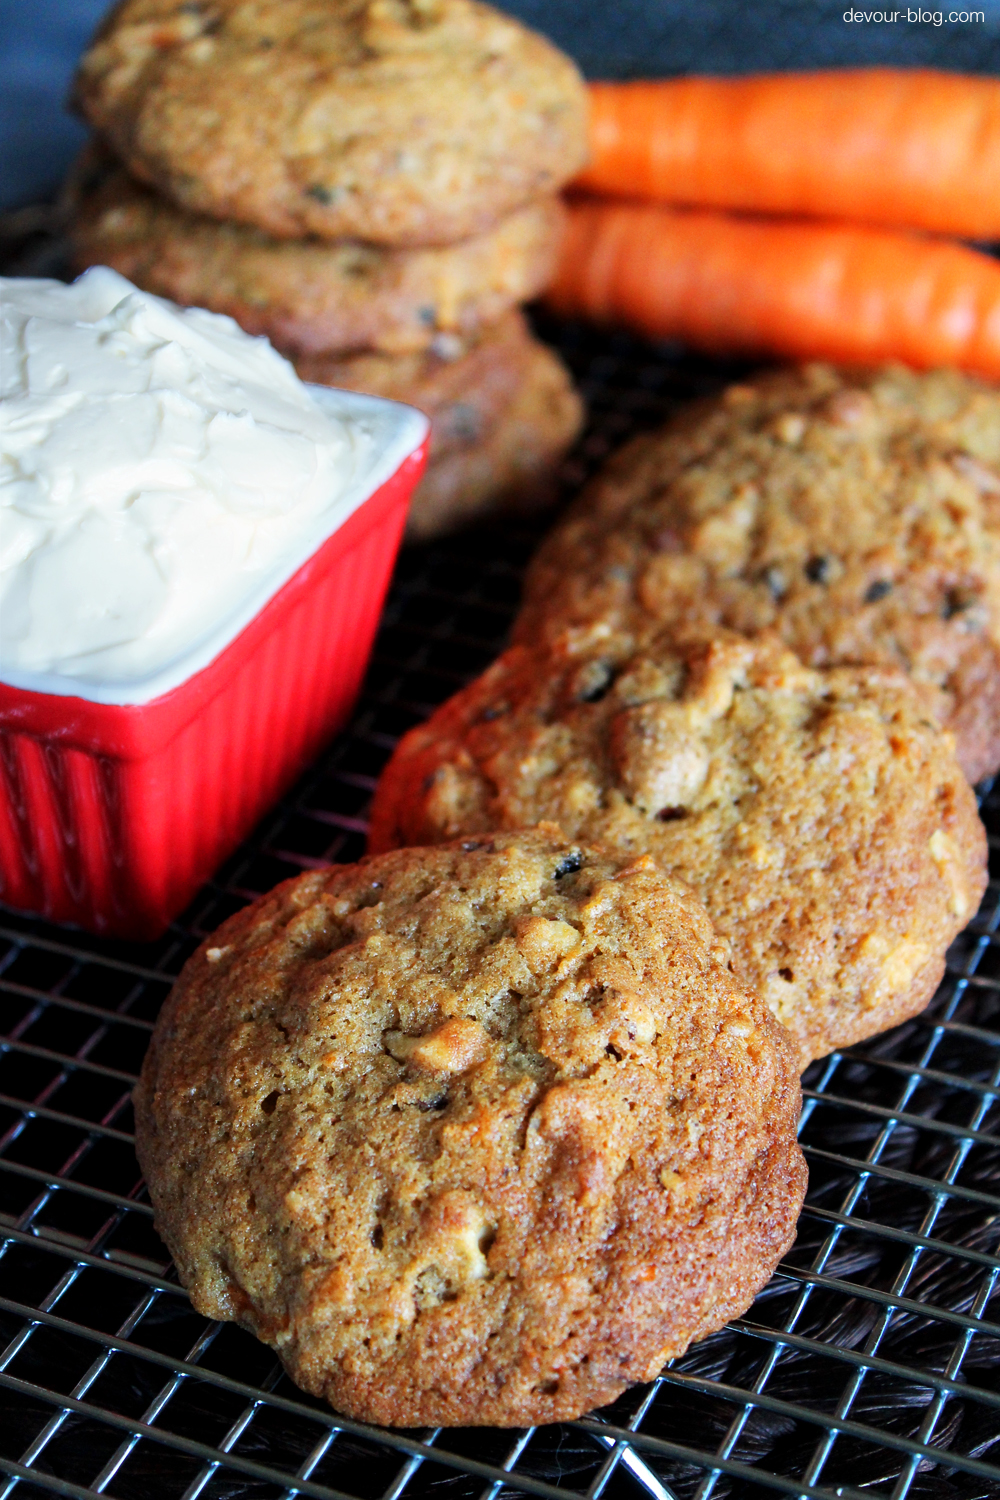 Carrot Cake Cookies with Honey Cream Cheese Filling. devour-blog.com